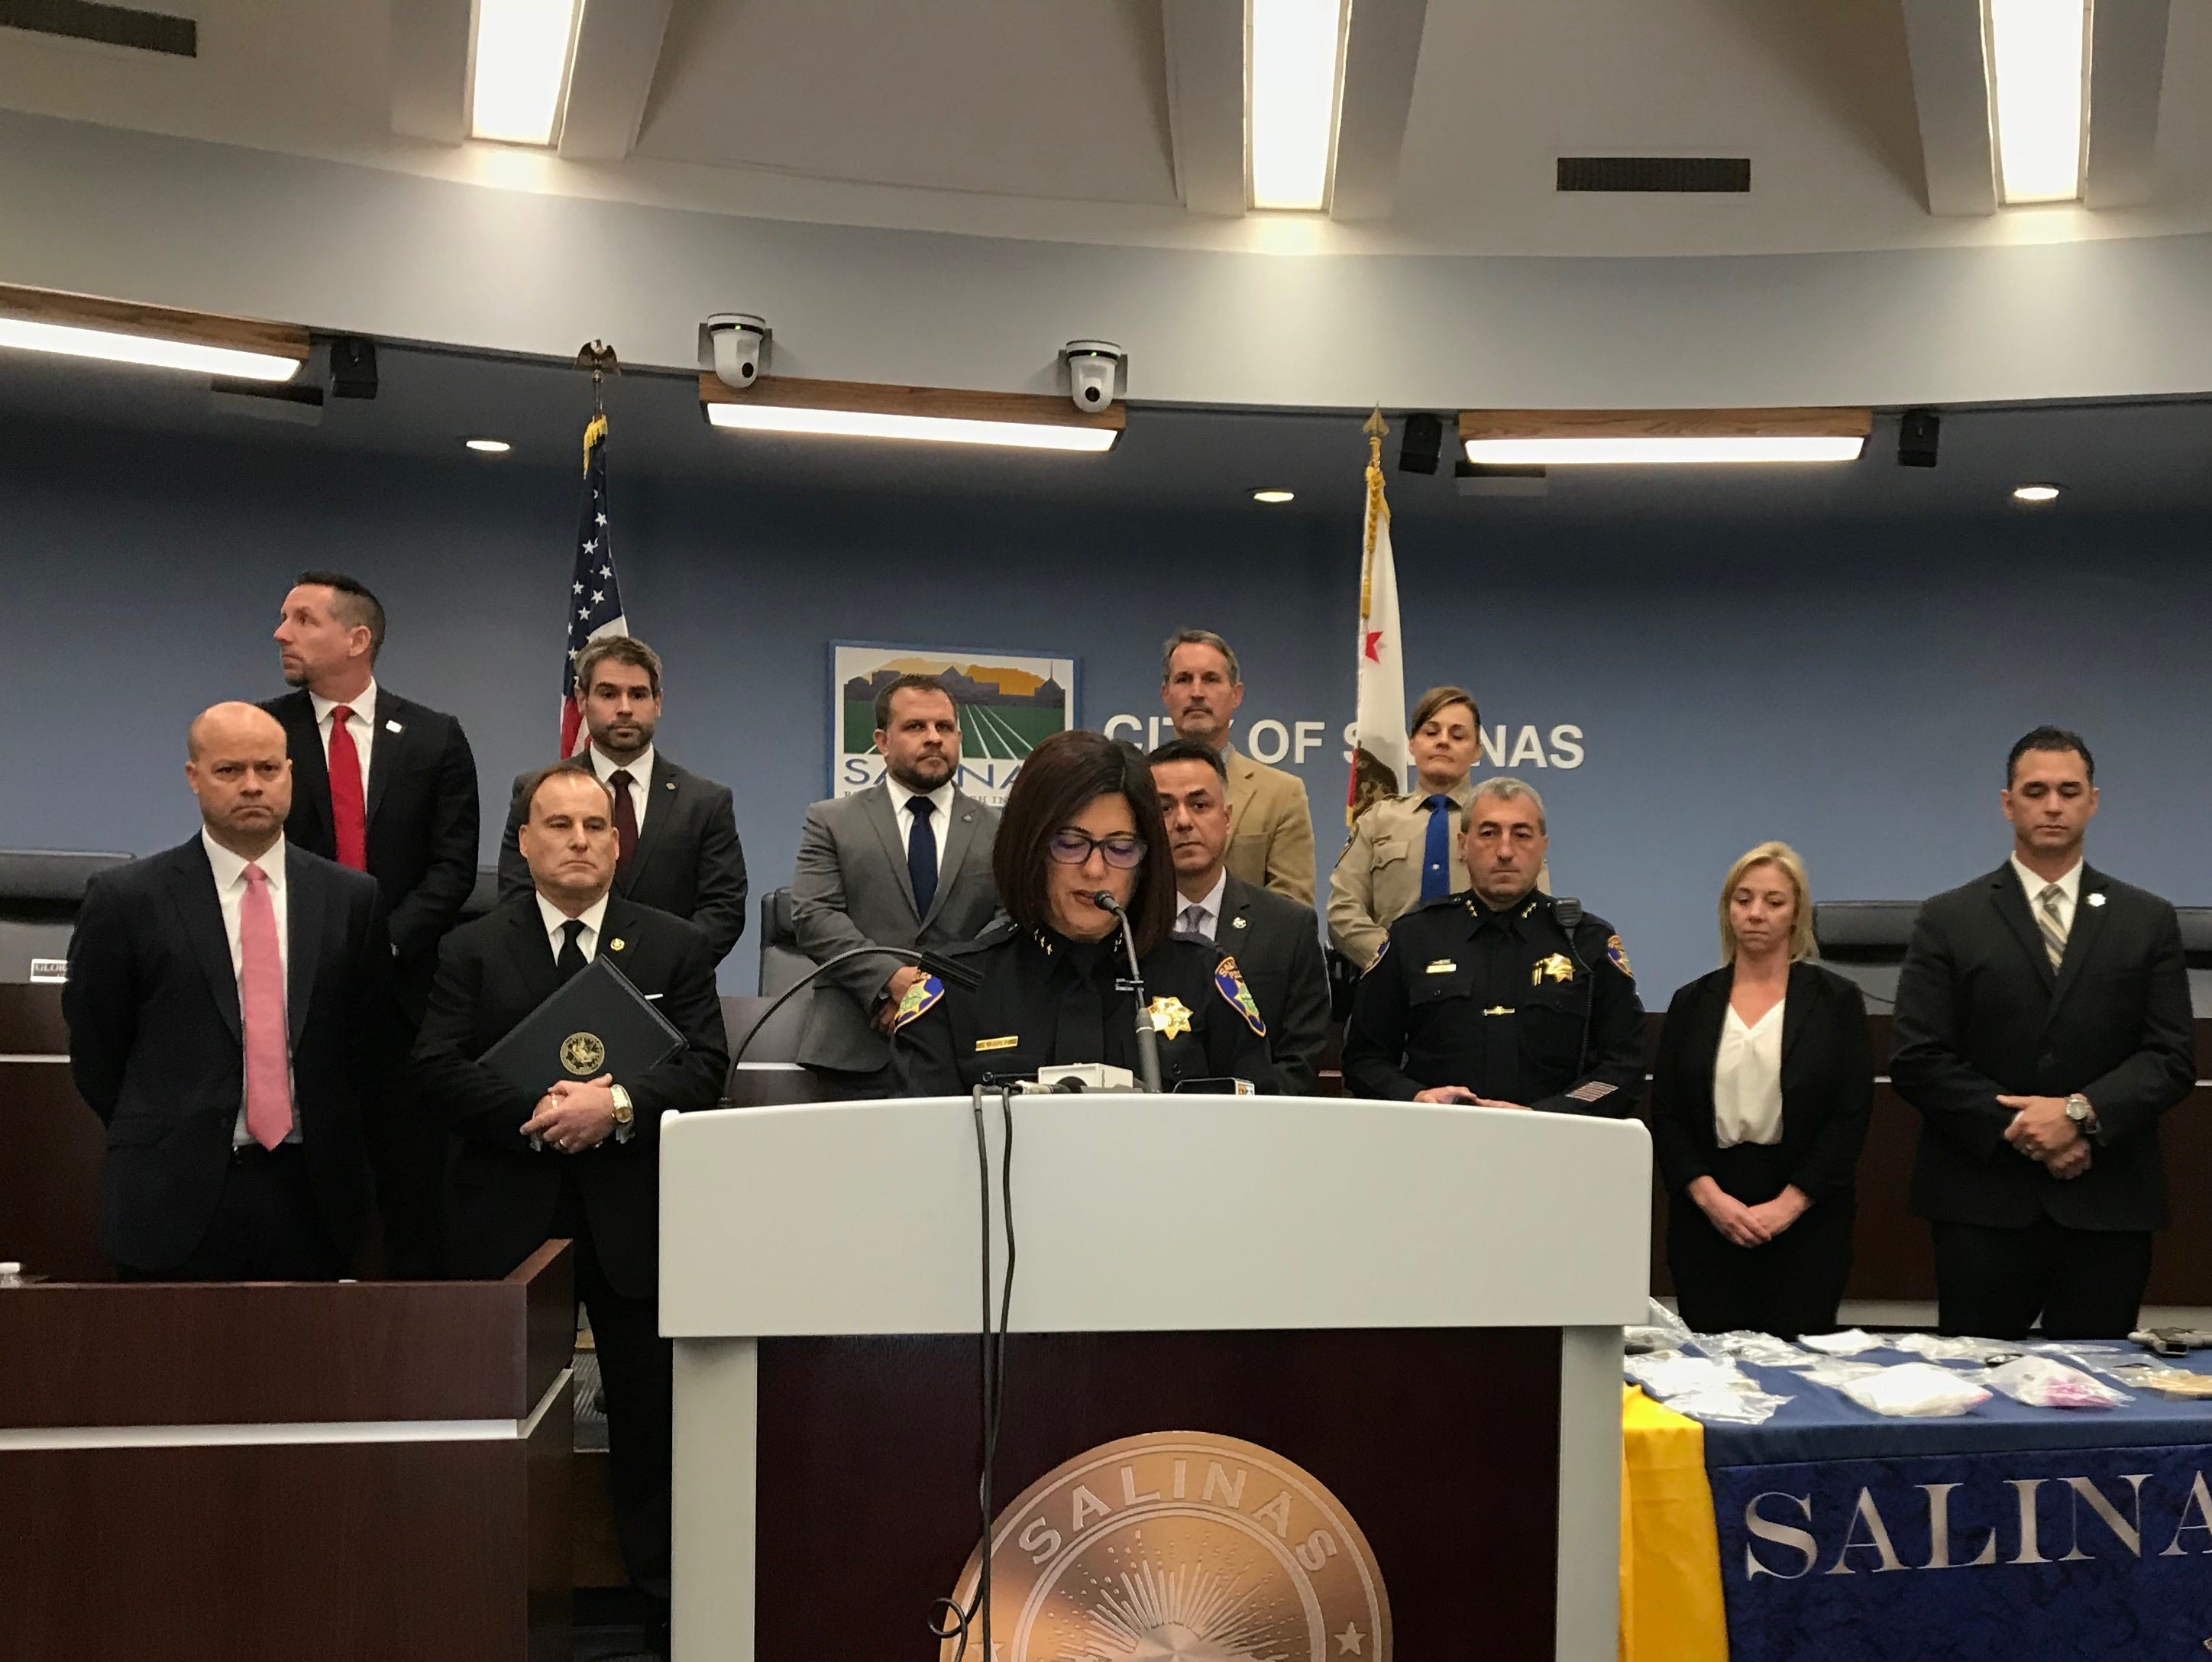 Salinas Police Chief Adele Frese leads the press conference Thursday for Triple Beam Operation, a collaborative counter gang initiative her police department conducted in partnership with local, state and federal law enforcement.